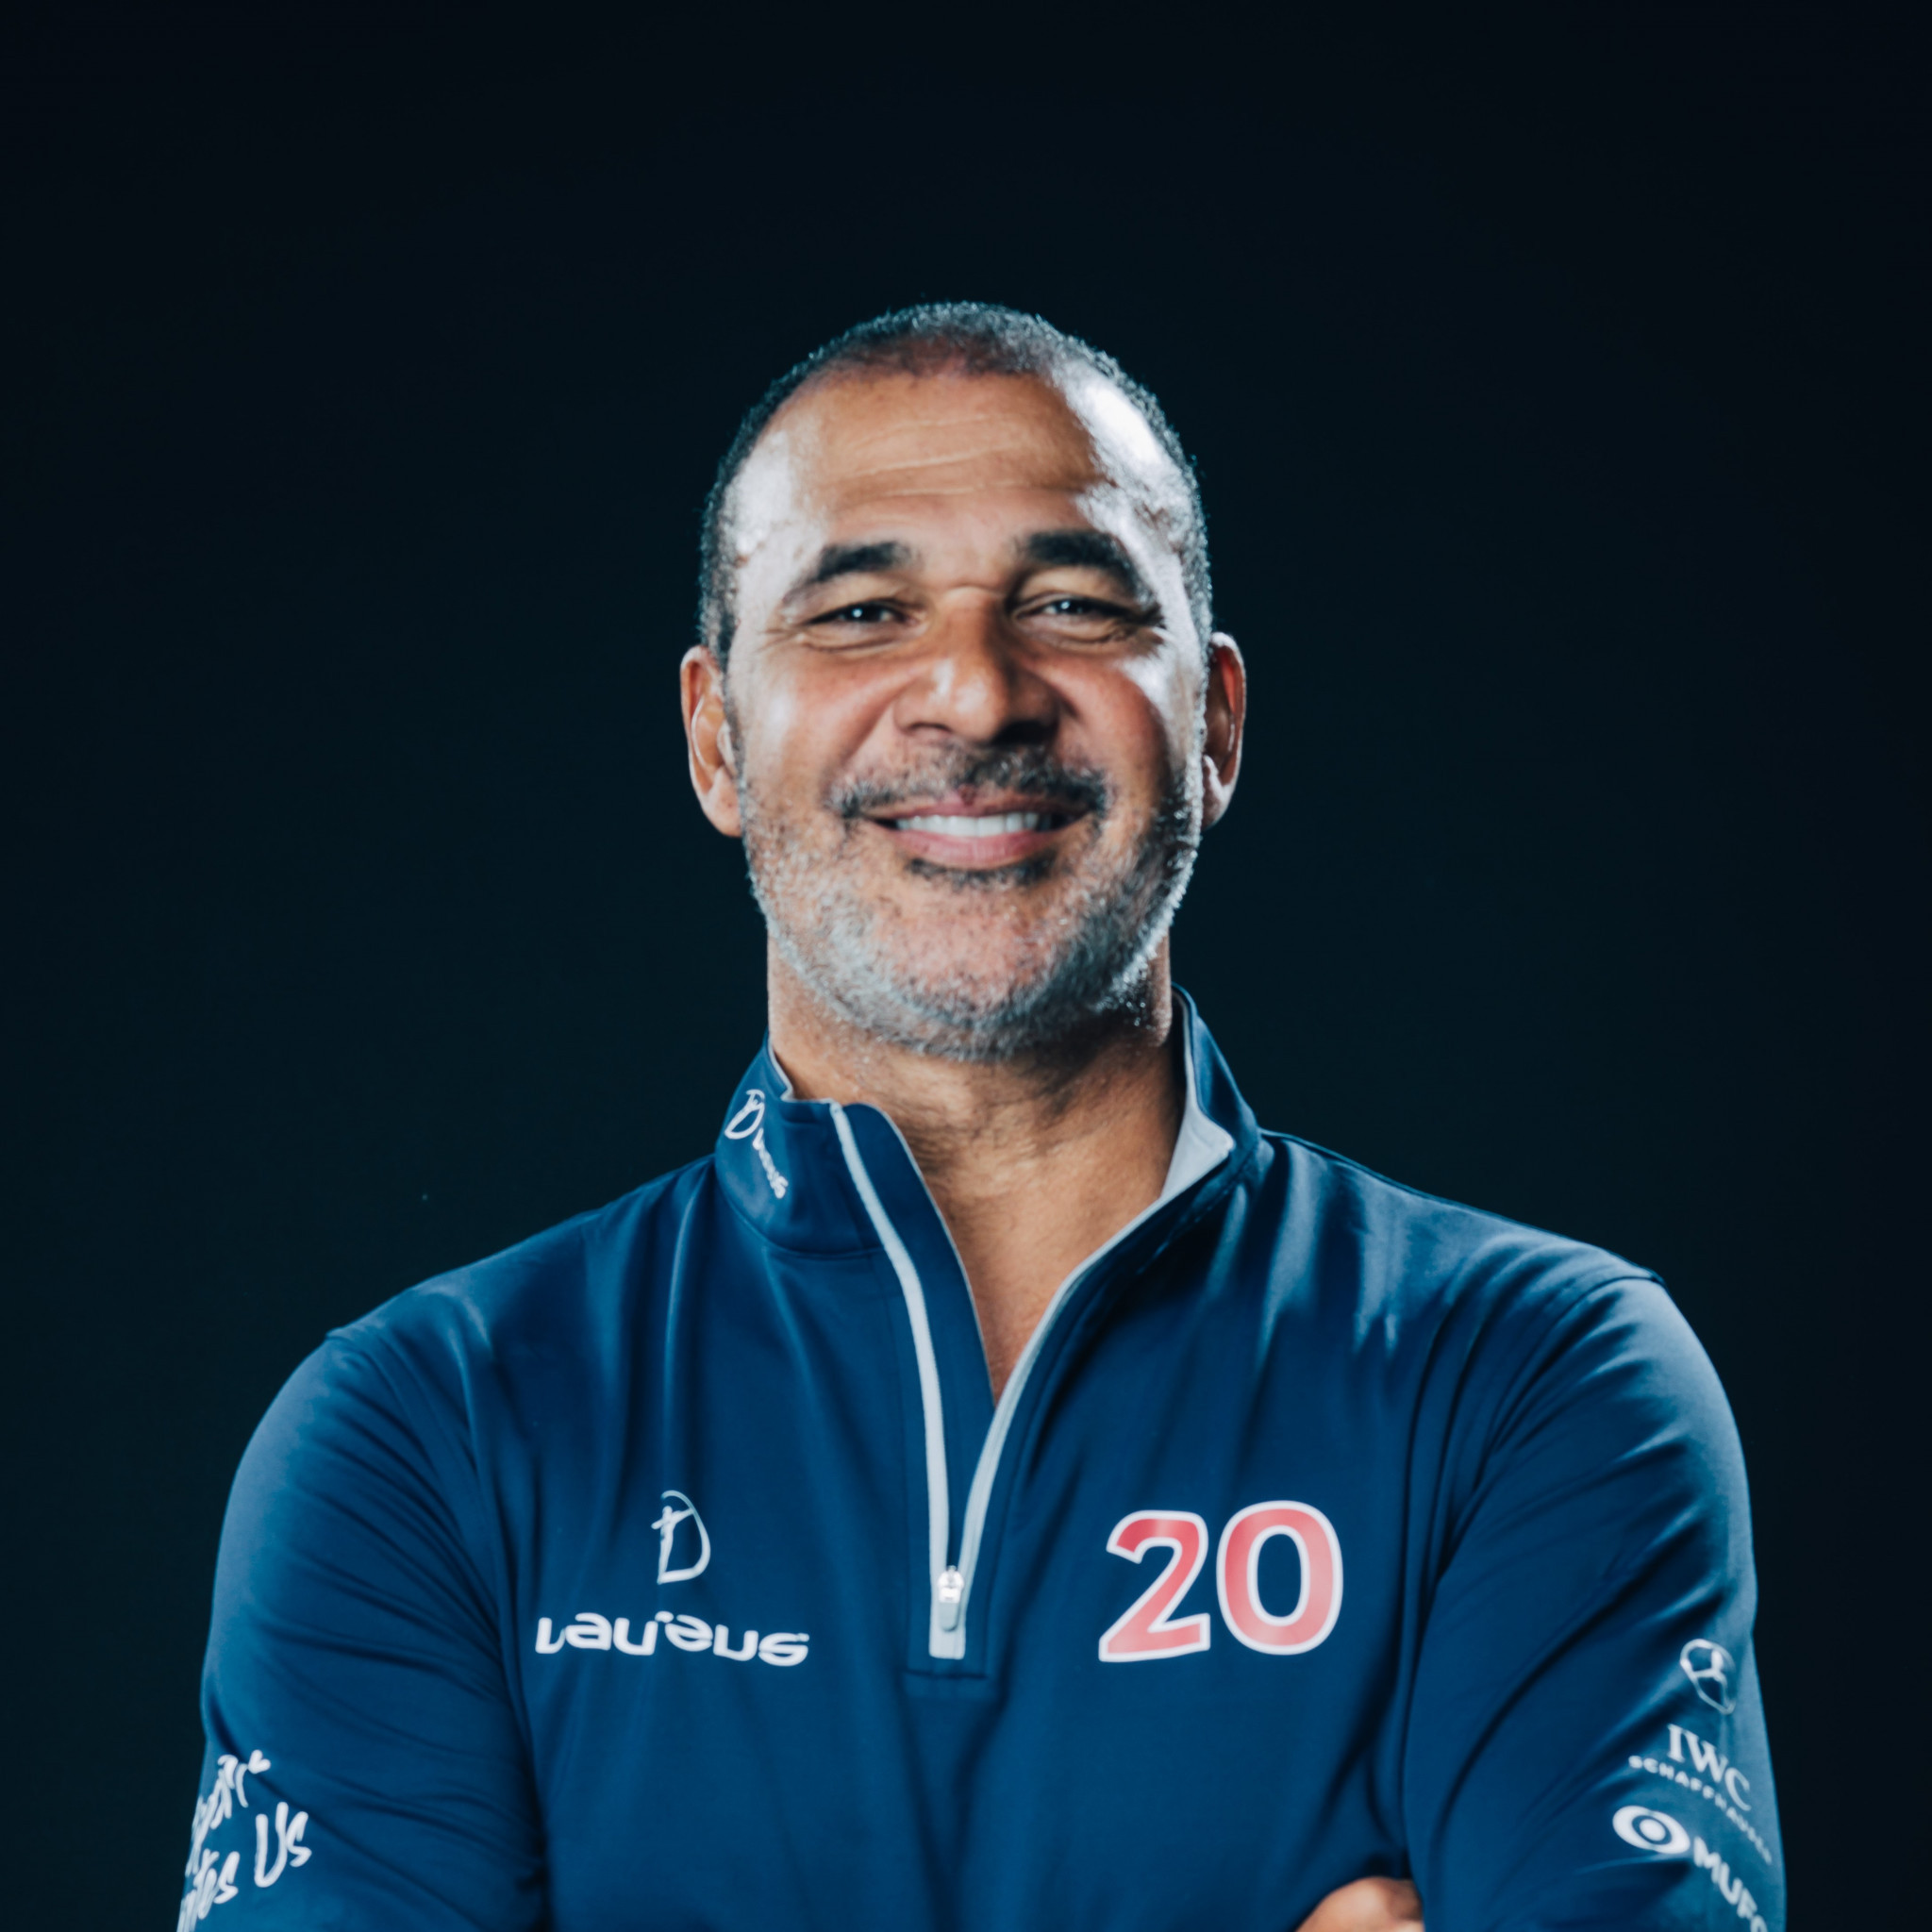 Team Gullit was launched by Dutch football legend Ruud Gullit in 2018 ©Getty Images